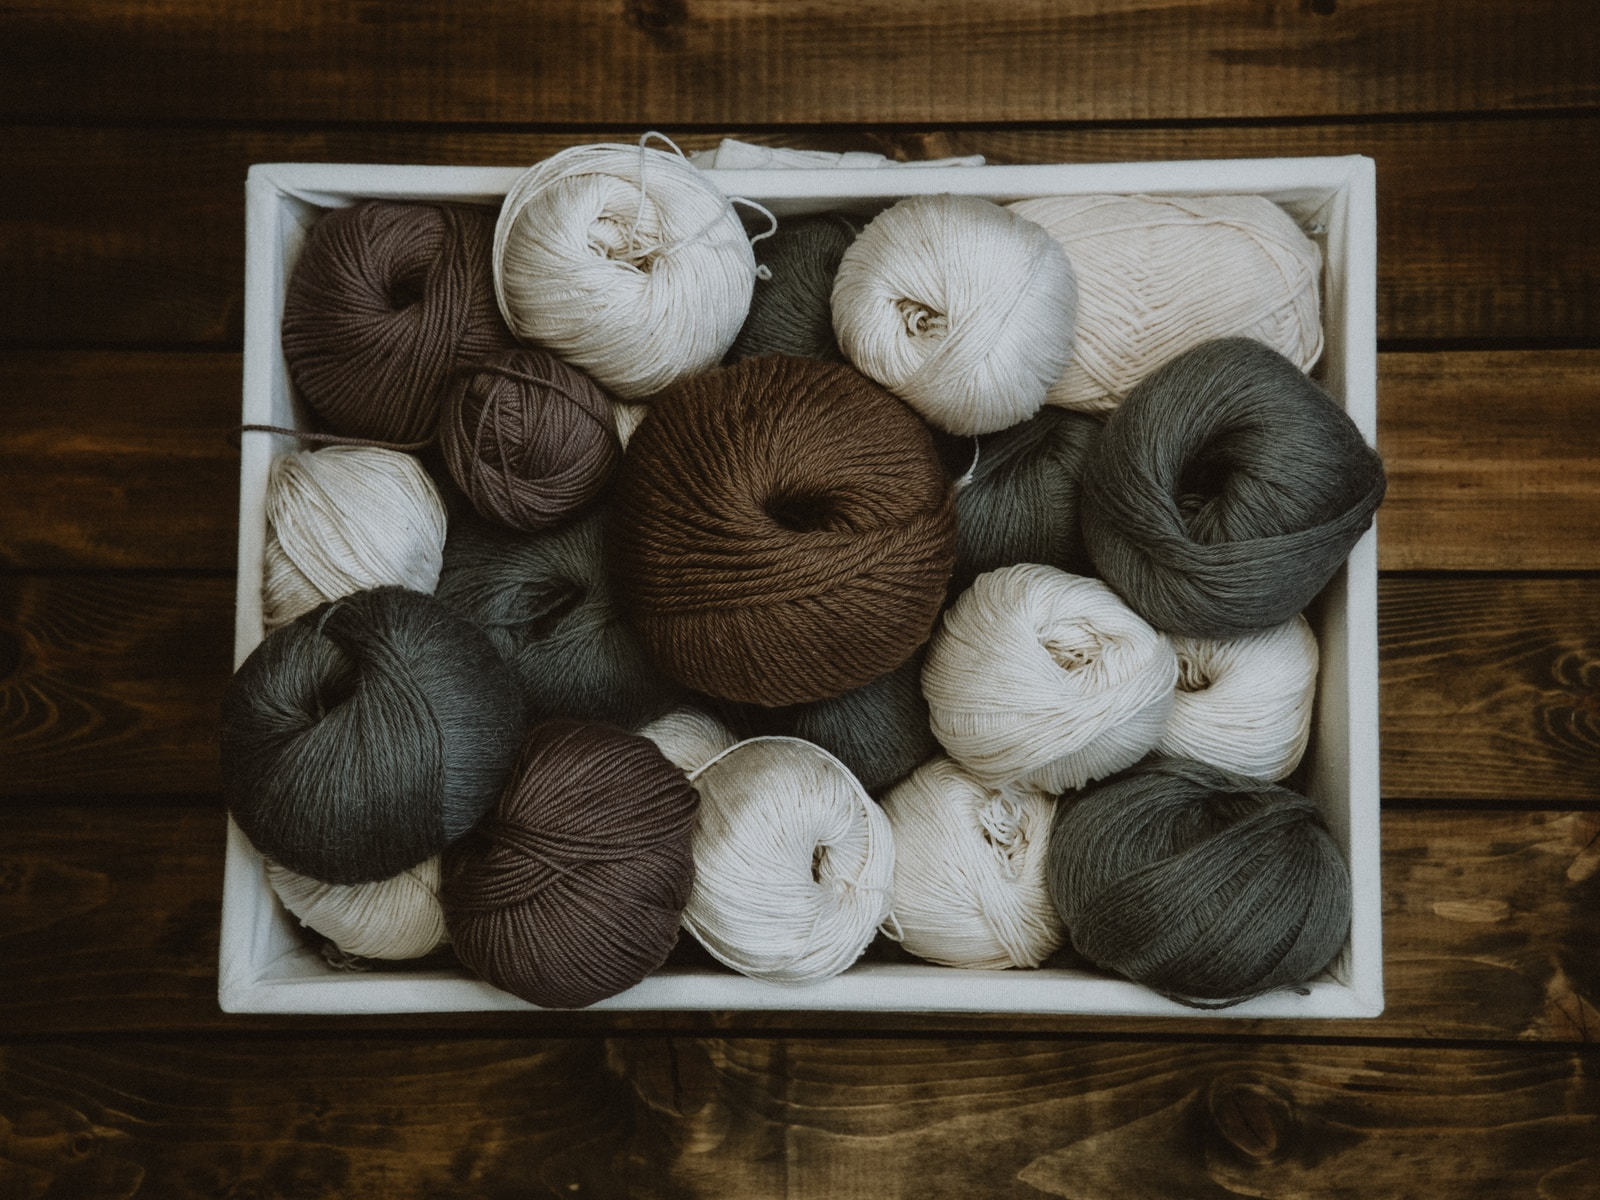 brown and white yarn ball lot